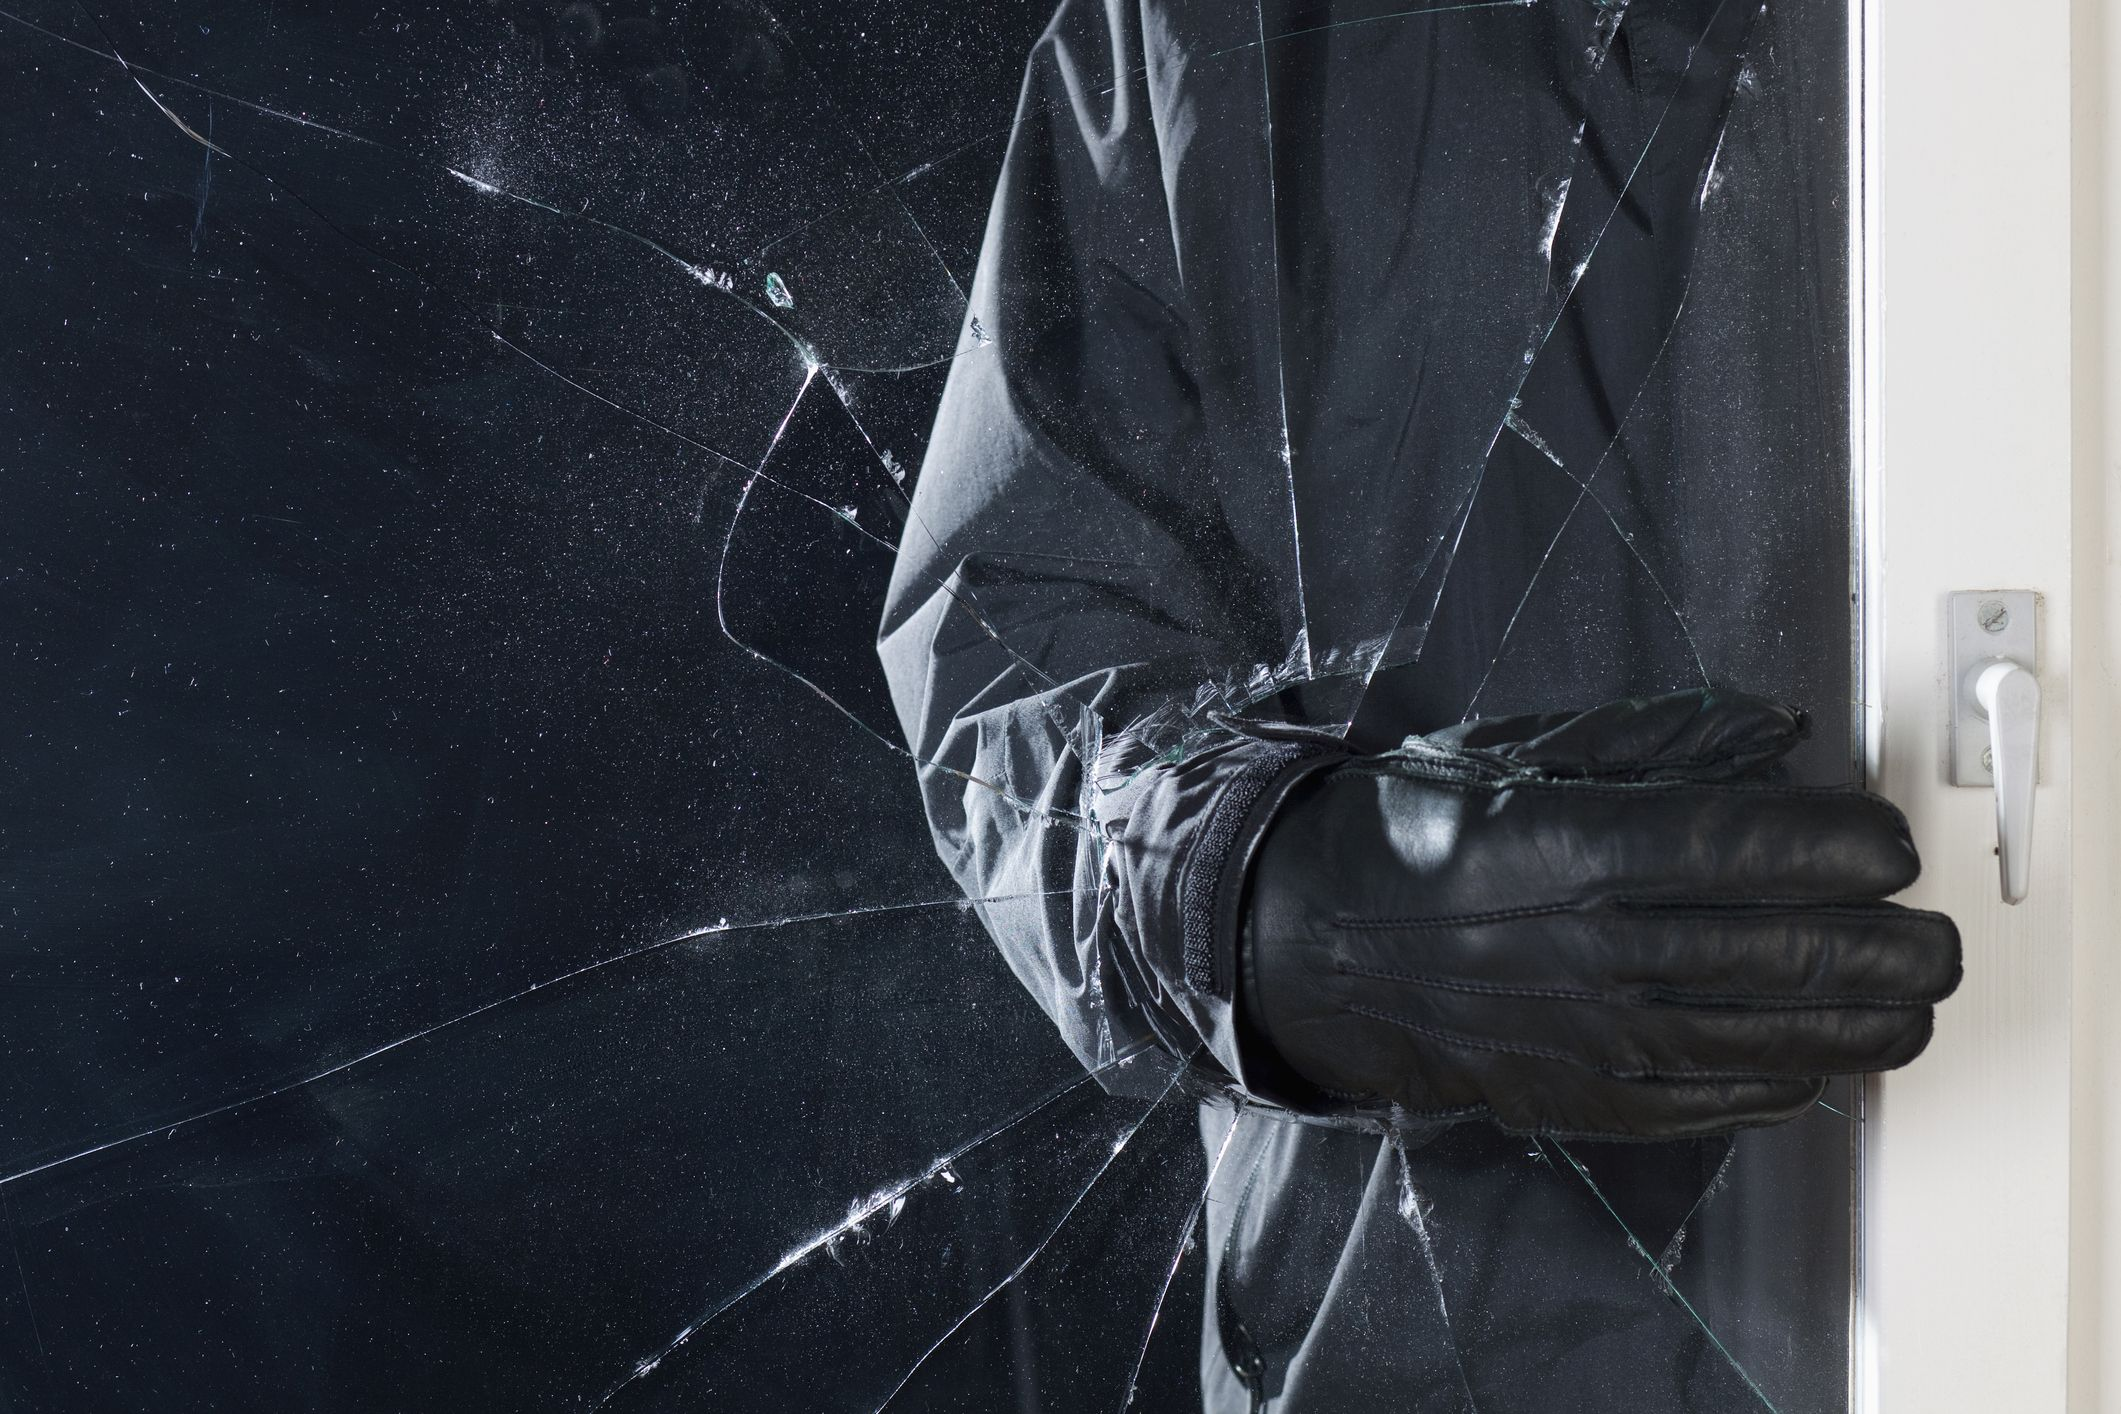 7 top tips from an ex-burglar to protect your home against theft this winter